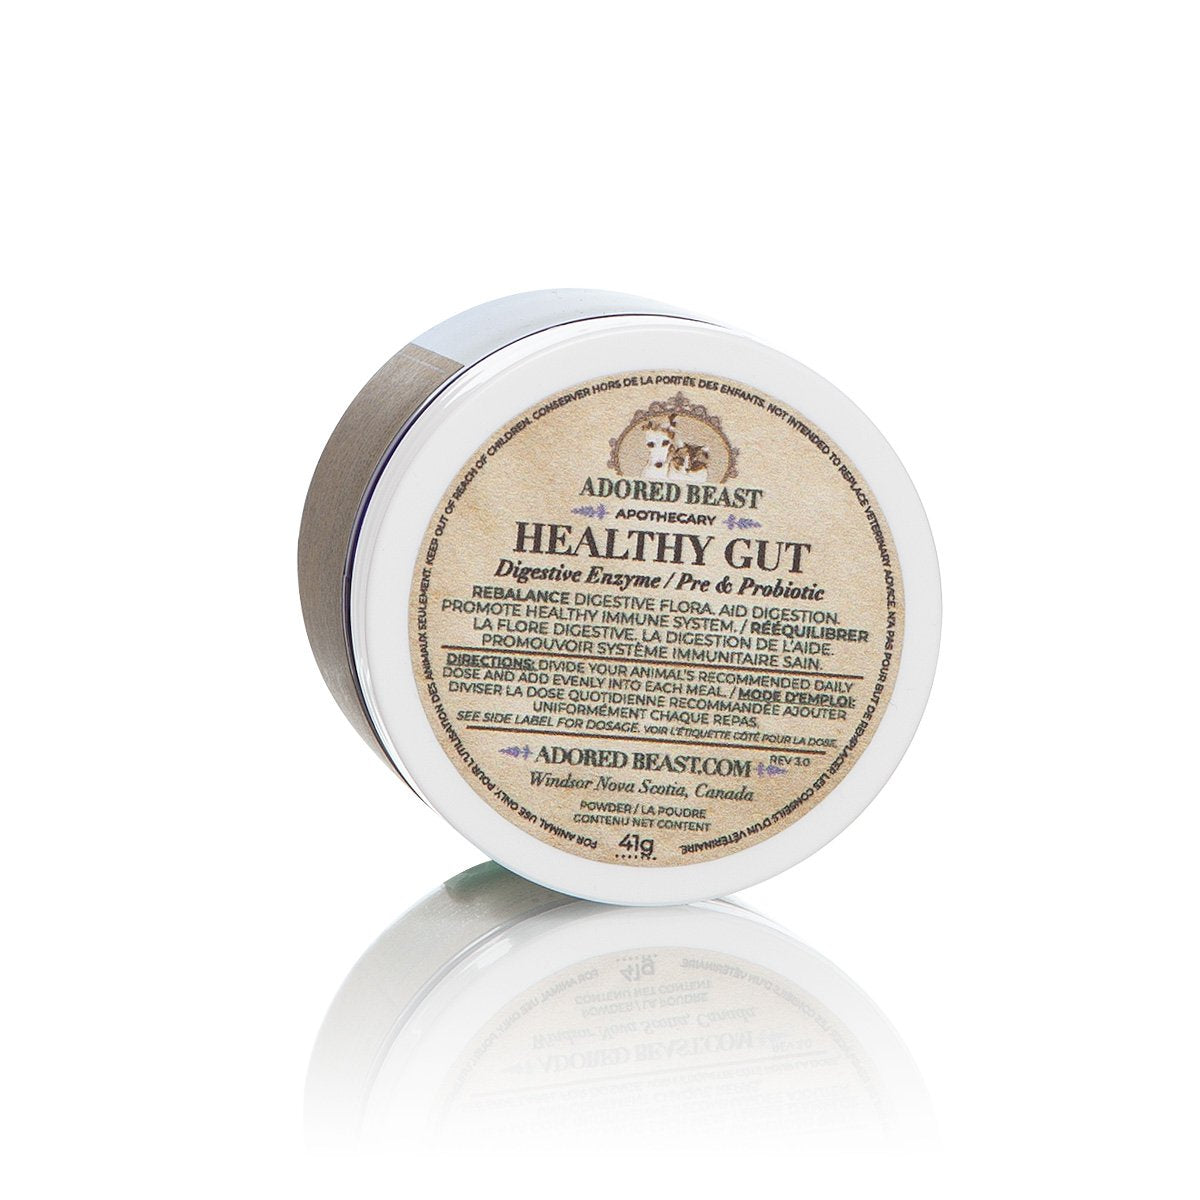 Healthy Gut - Adored Beast Apothecary